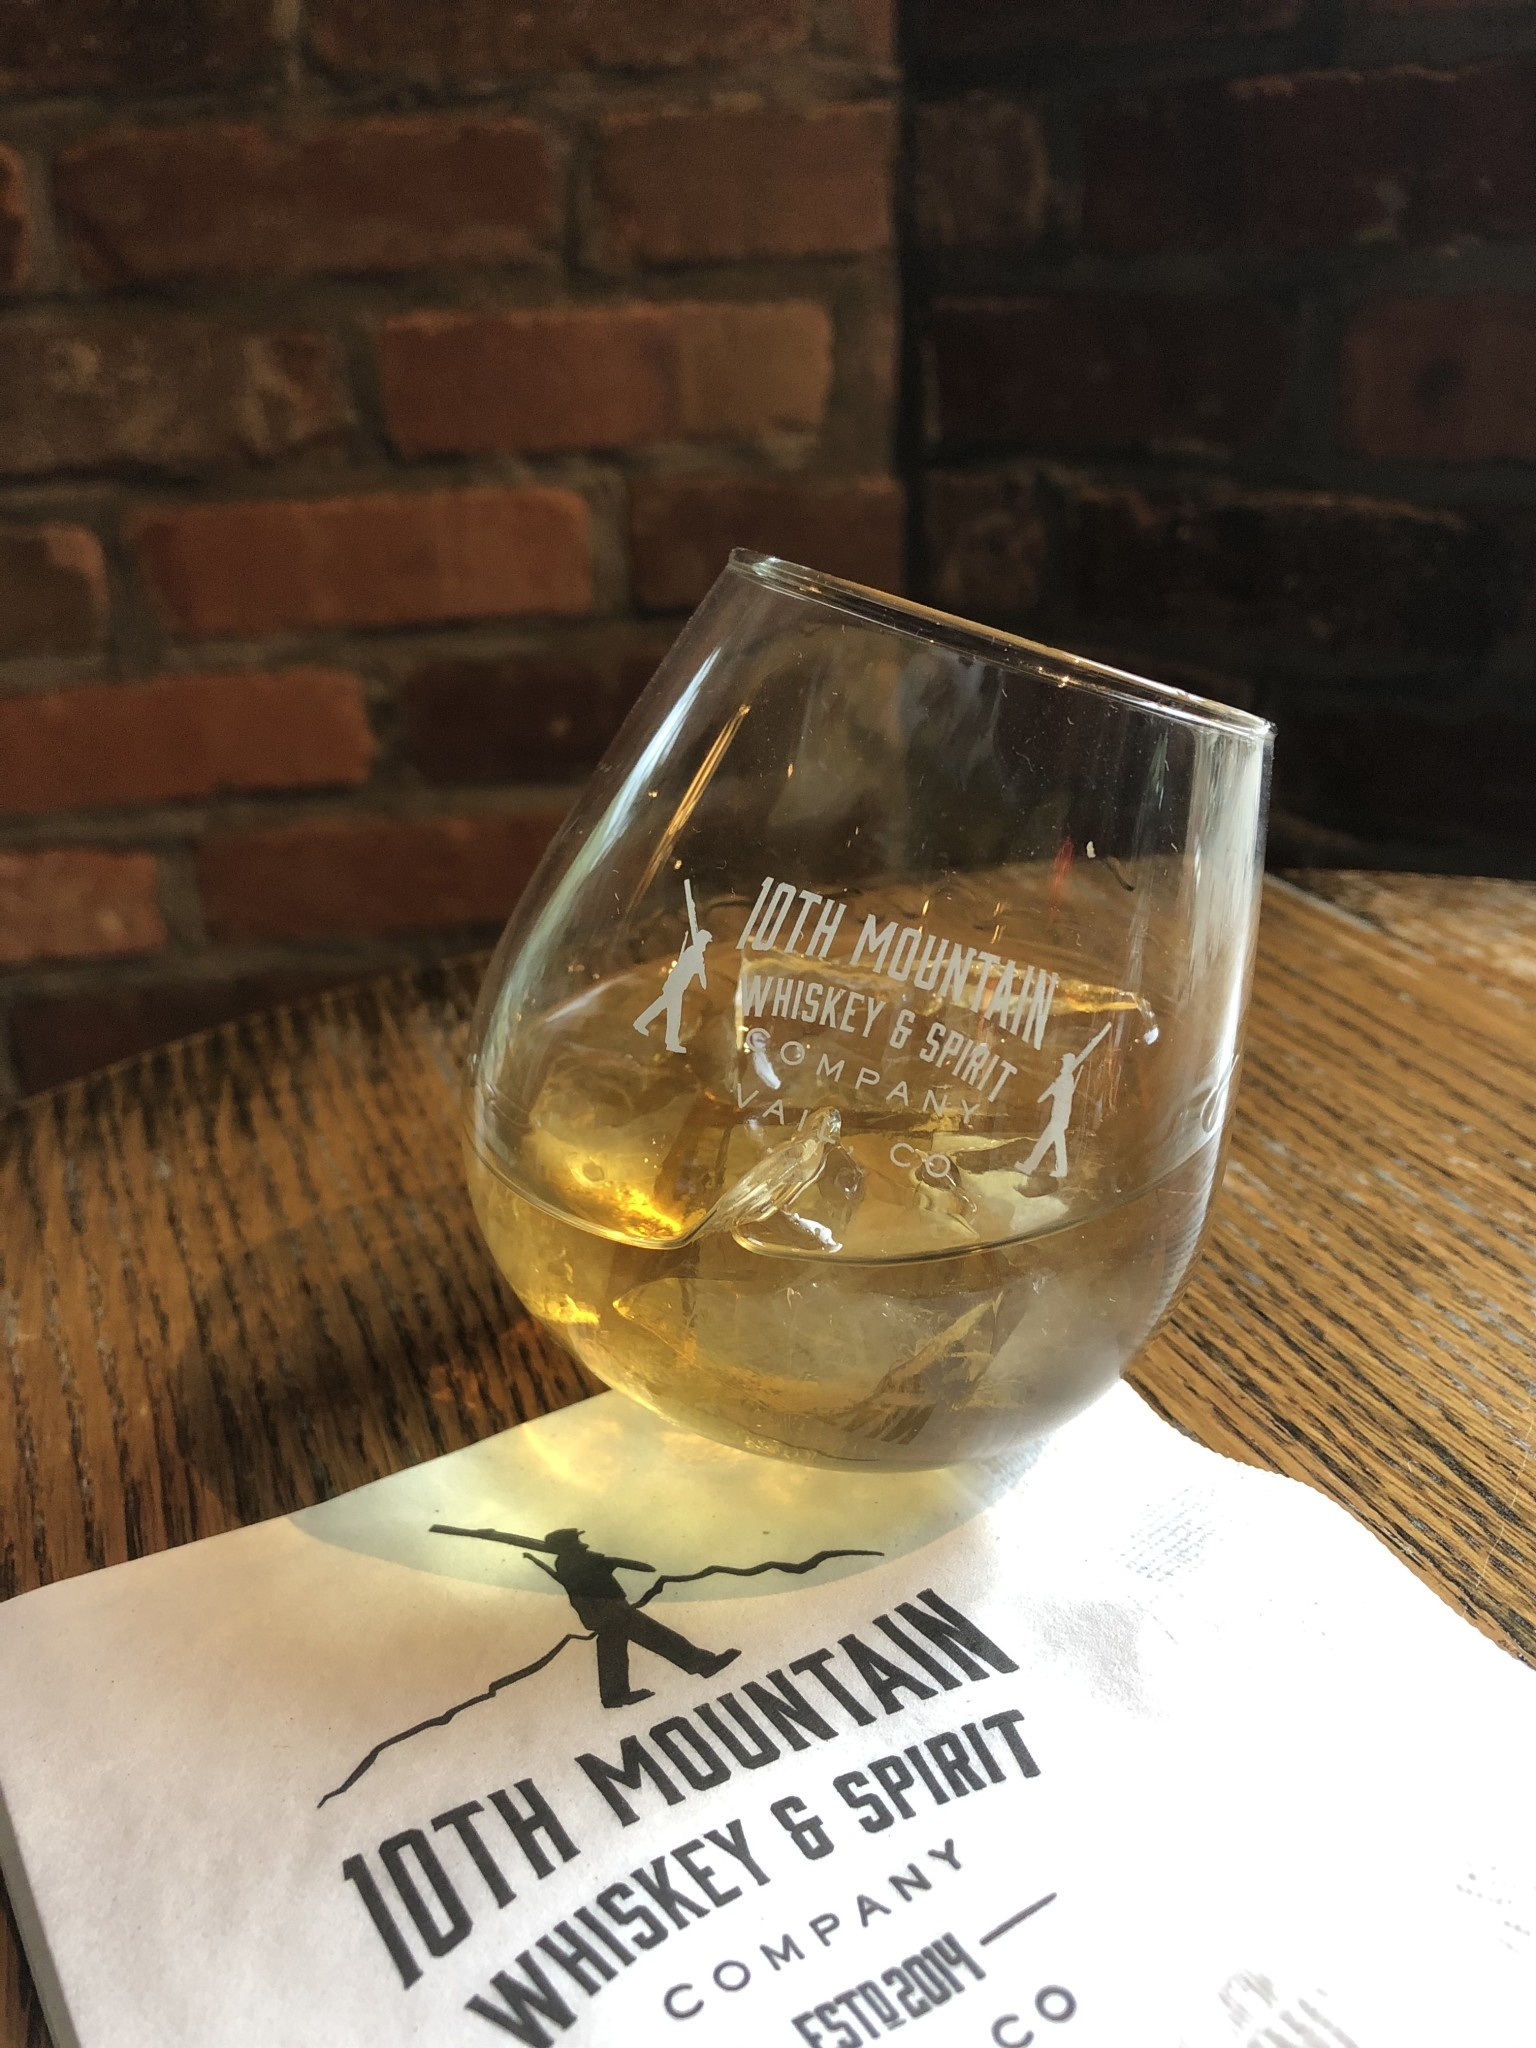 10th Mountain Whiskey & Spirit Co. Rocker Glass